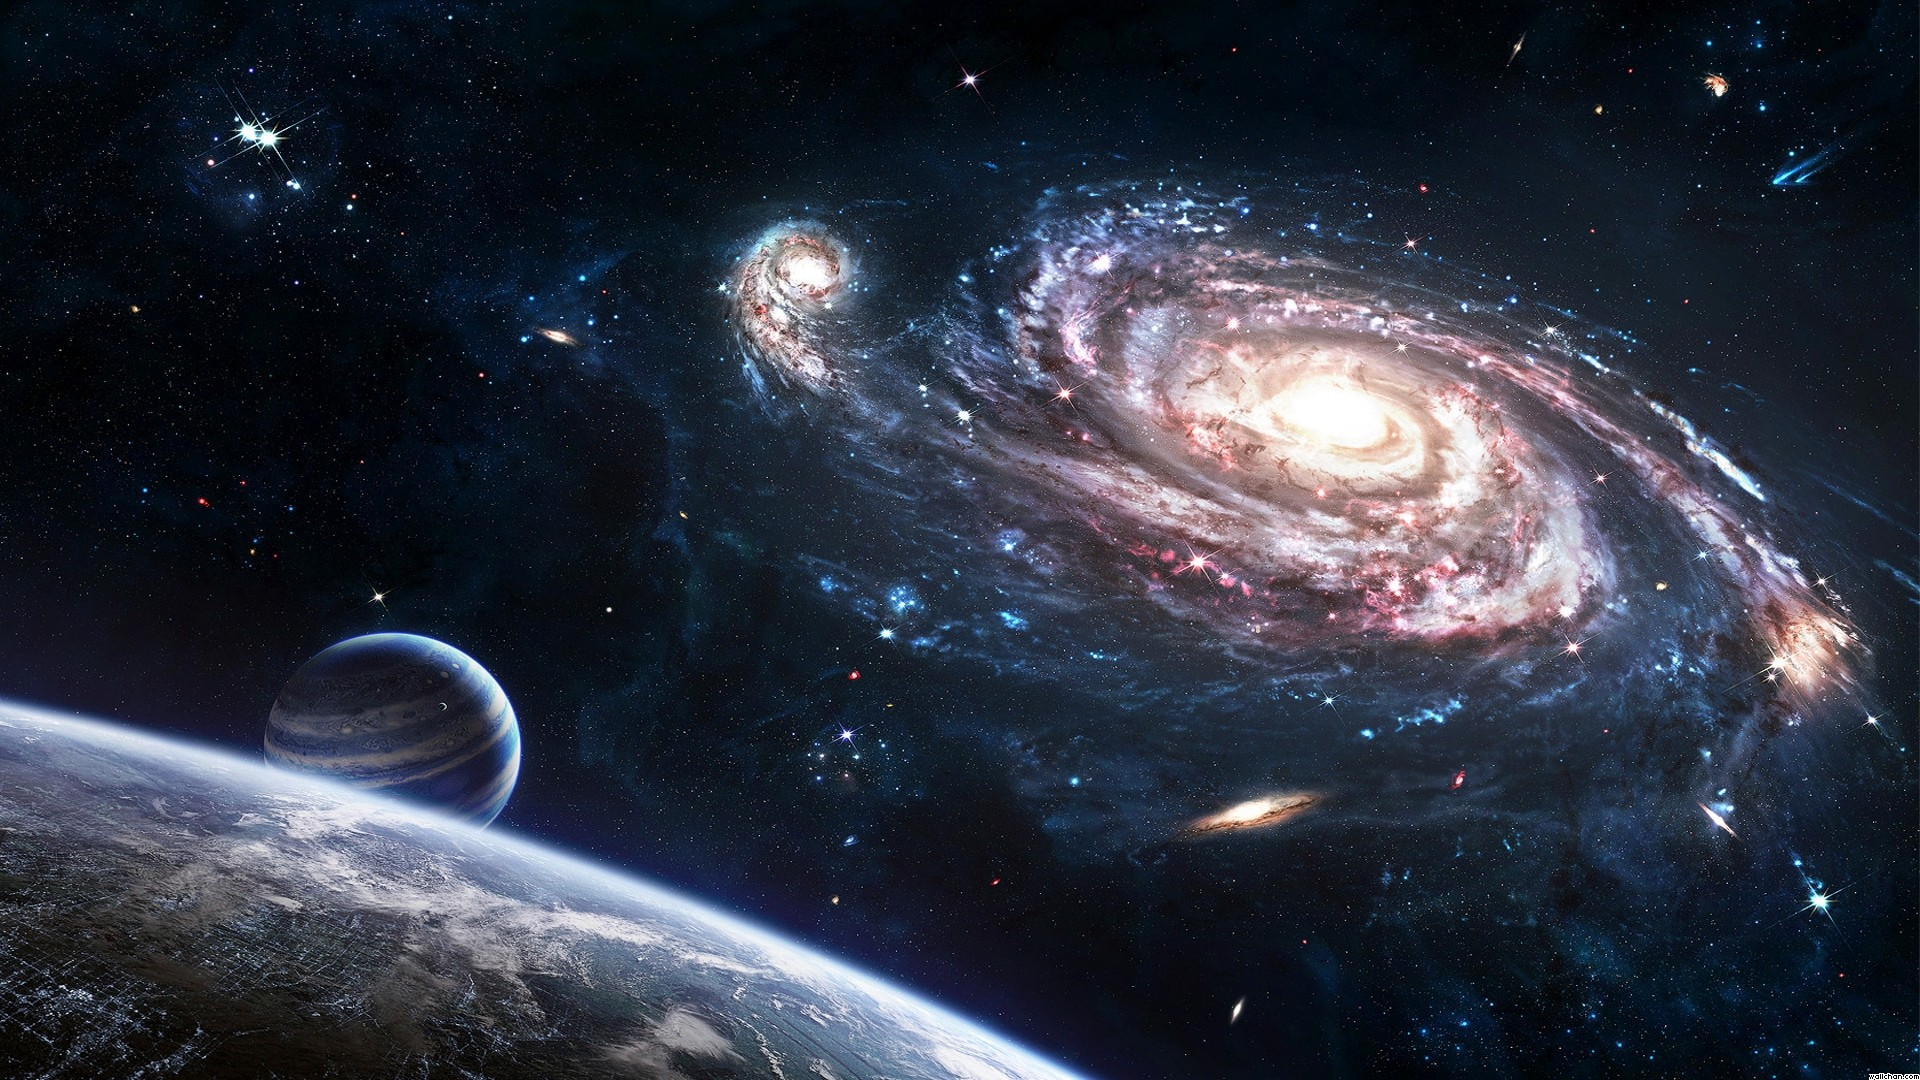 Space Tumblr Wallpapers High Quality